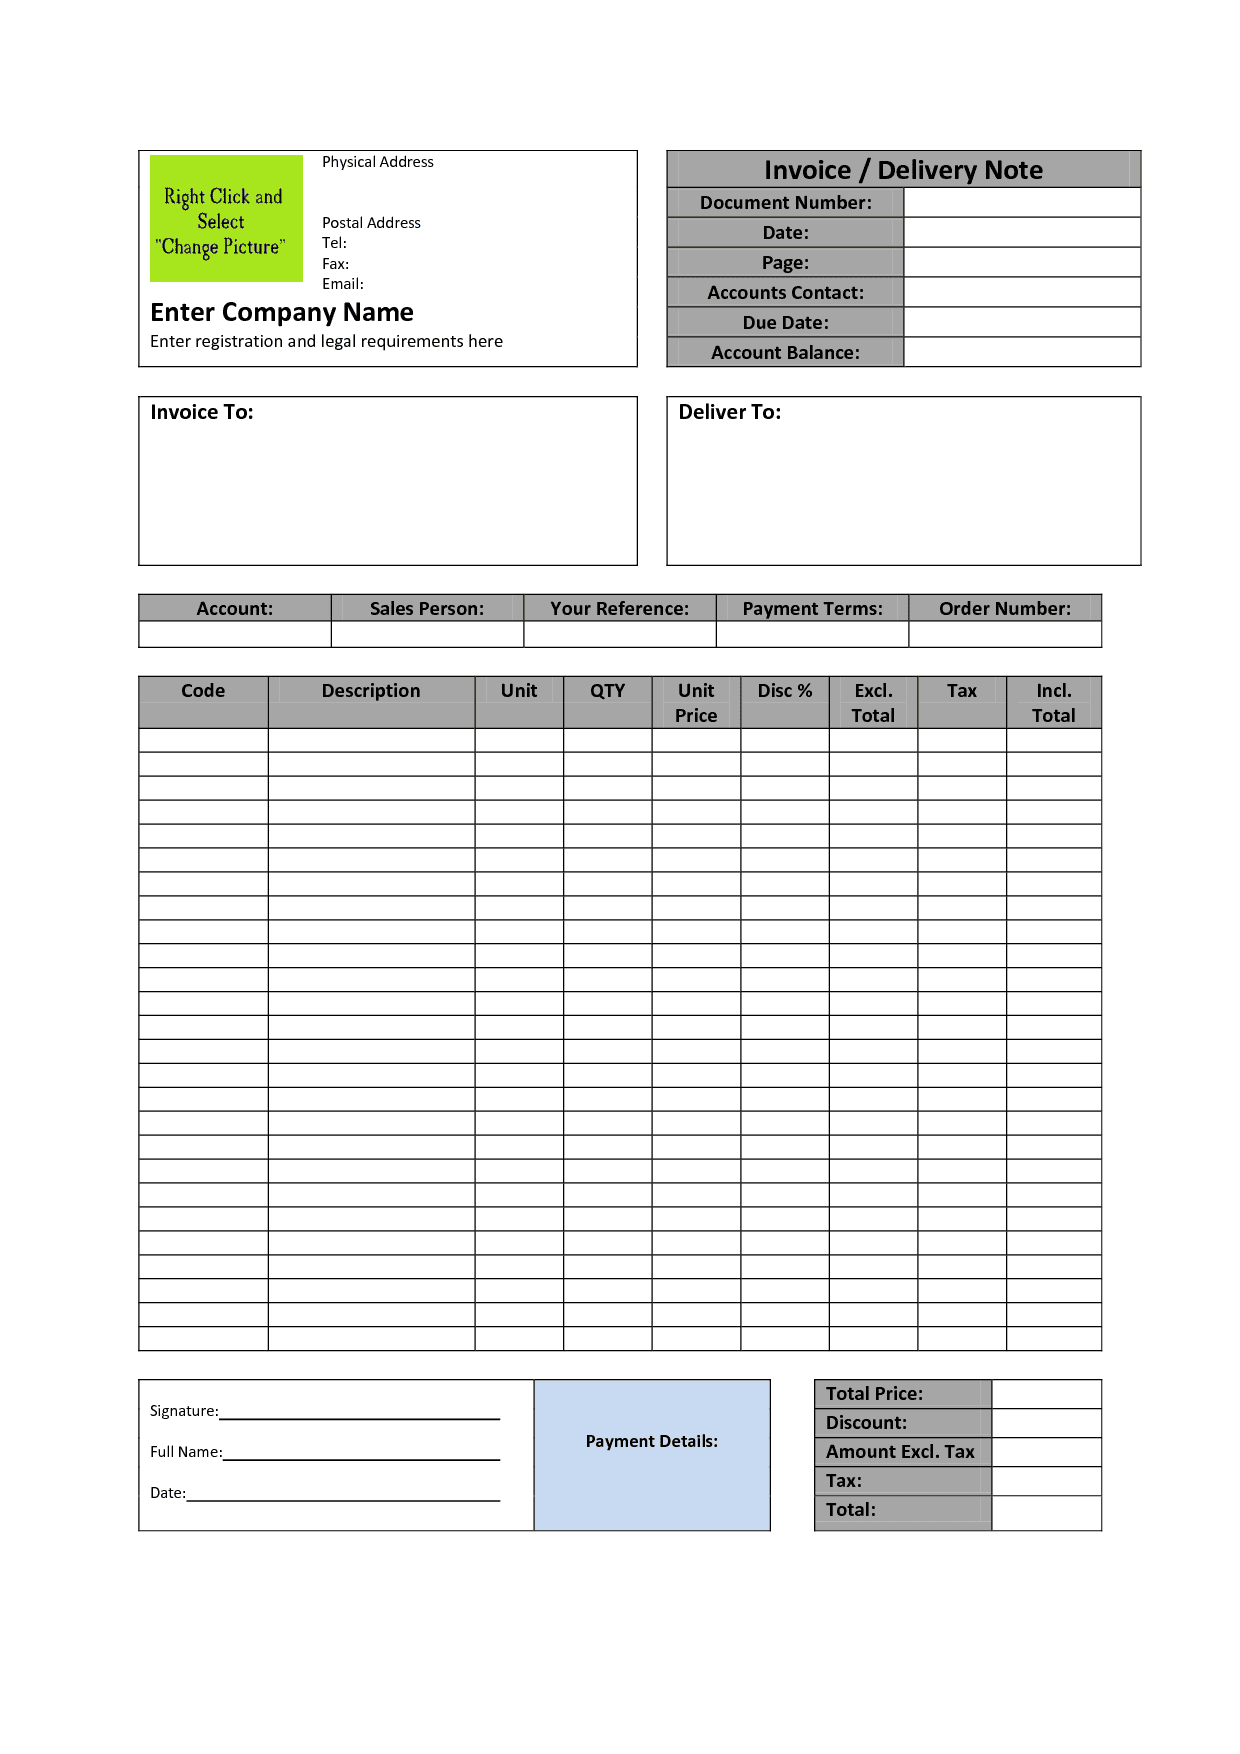 Invoice Templates Printable Free Invoice Template Word Doc Spreadsheet Templates for Busines Spreadsheet Templates for Busines Word Document Invoice Template Blank Invoice Template Word Doc